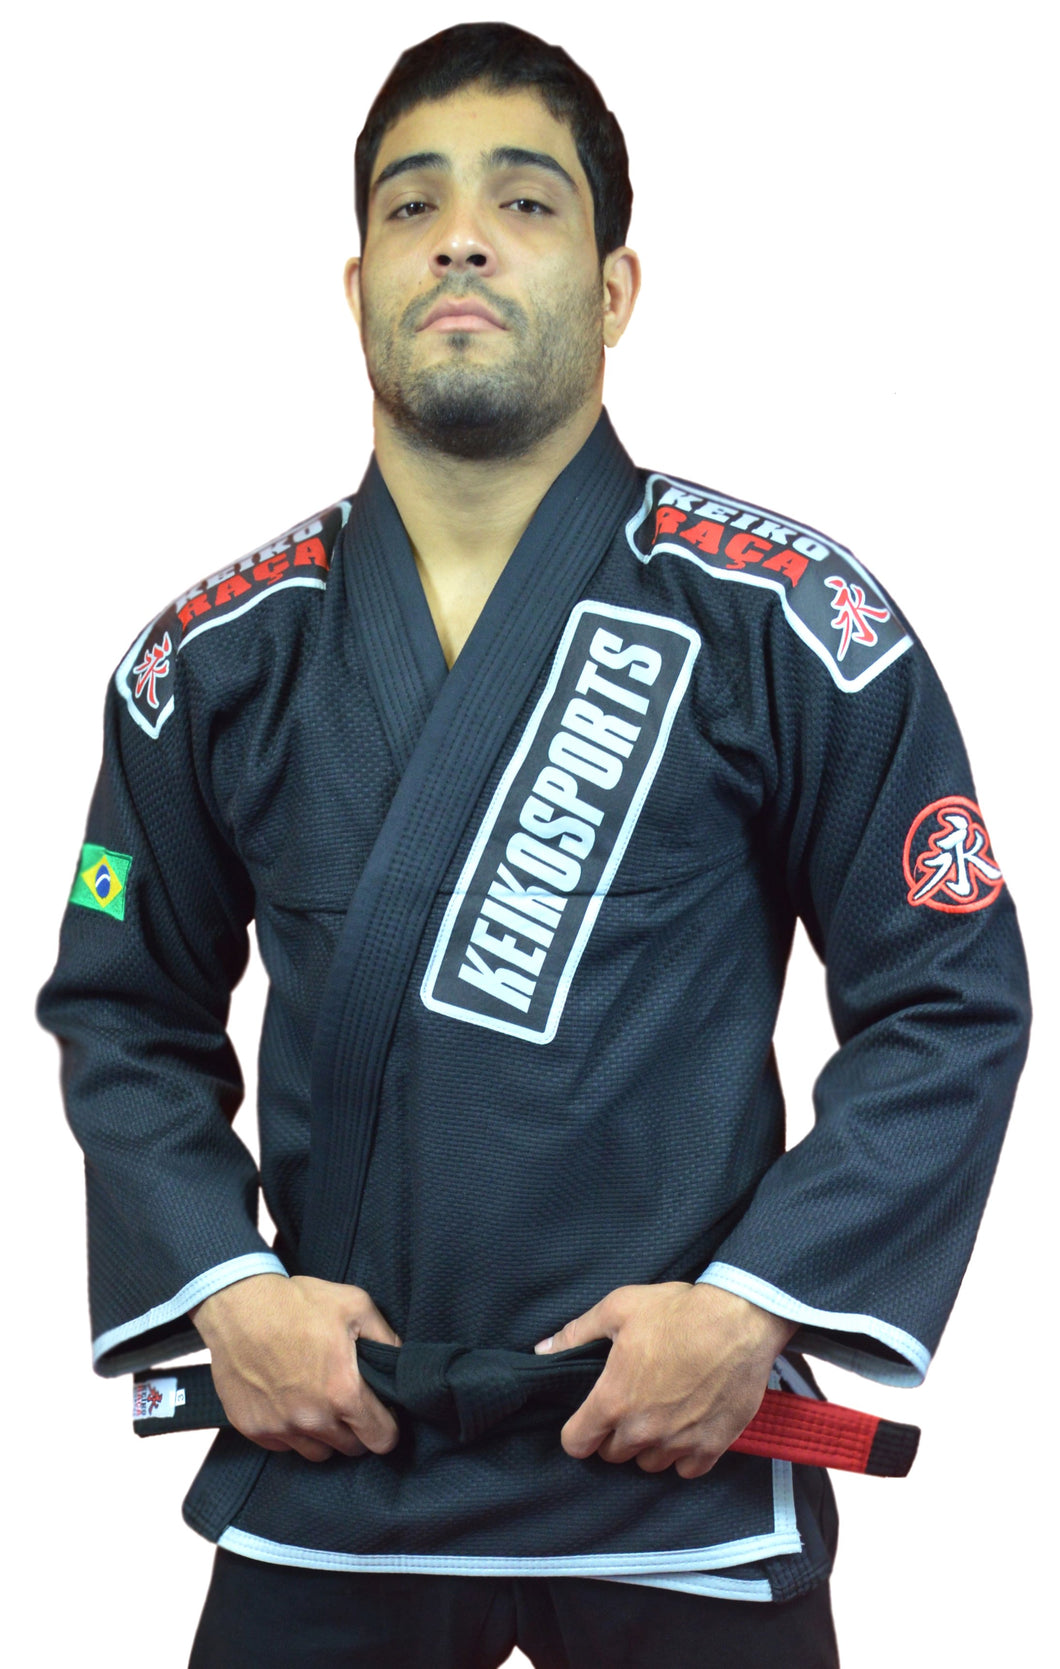 Original Limited Series Gi TOP - Black